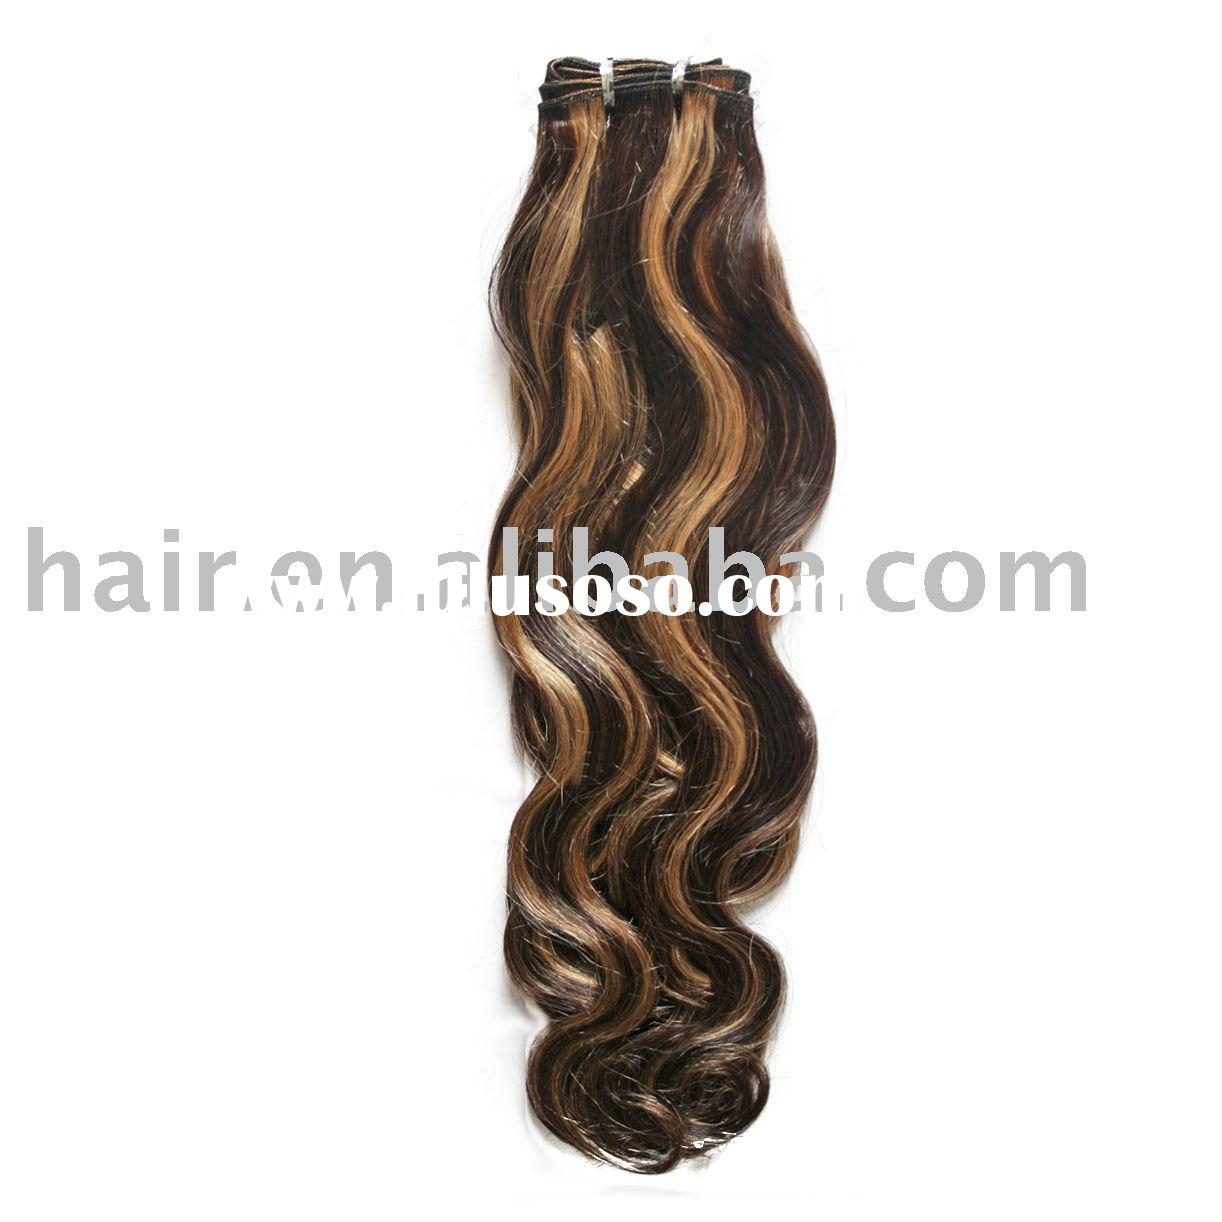 100%Human Hair Weave Hollywood Weave Hair Weave 100%Remy Hair/European Hair/Artificial Hair